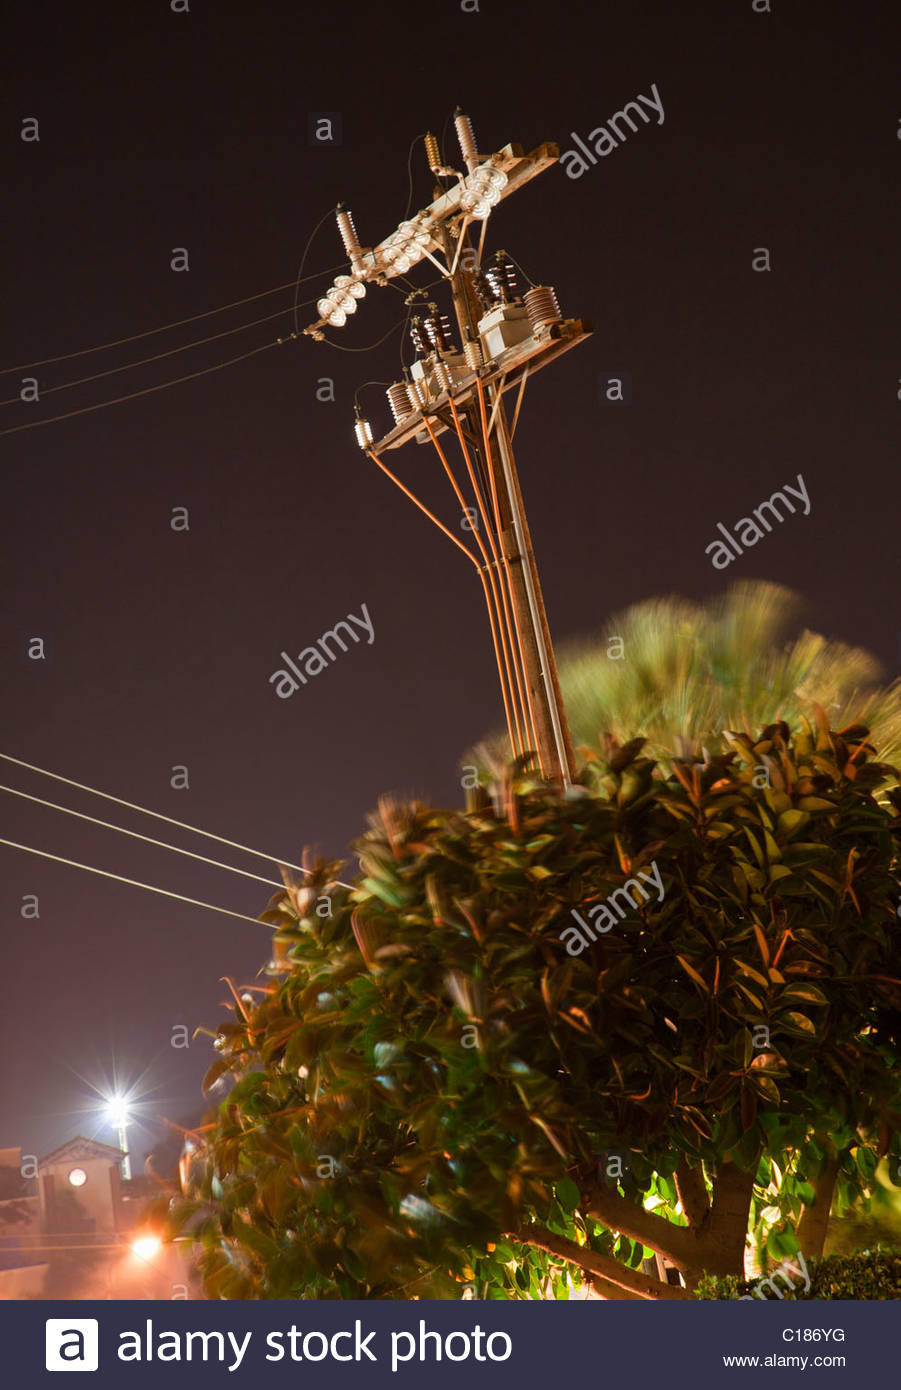 Electricity pylon at night - Stock Image